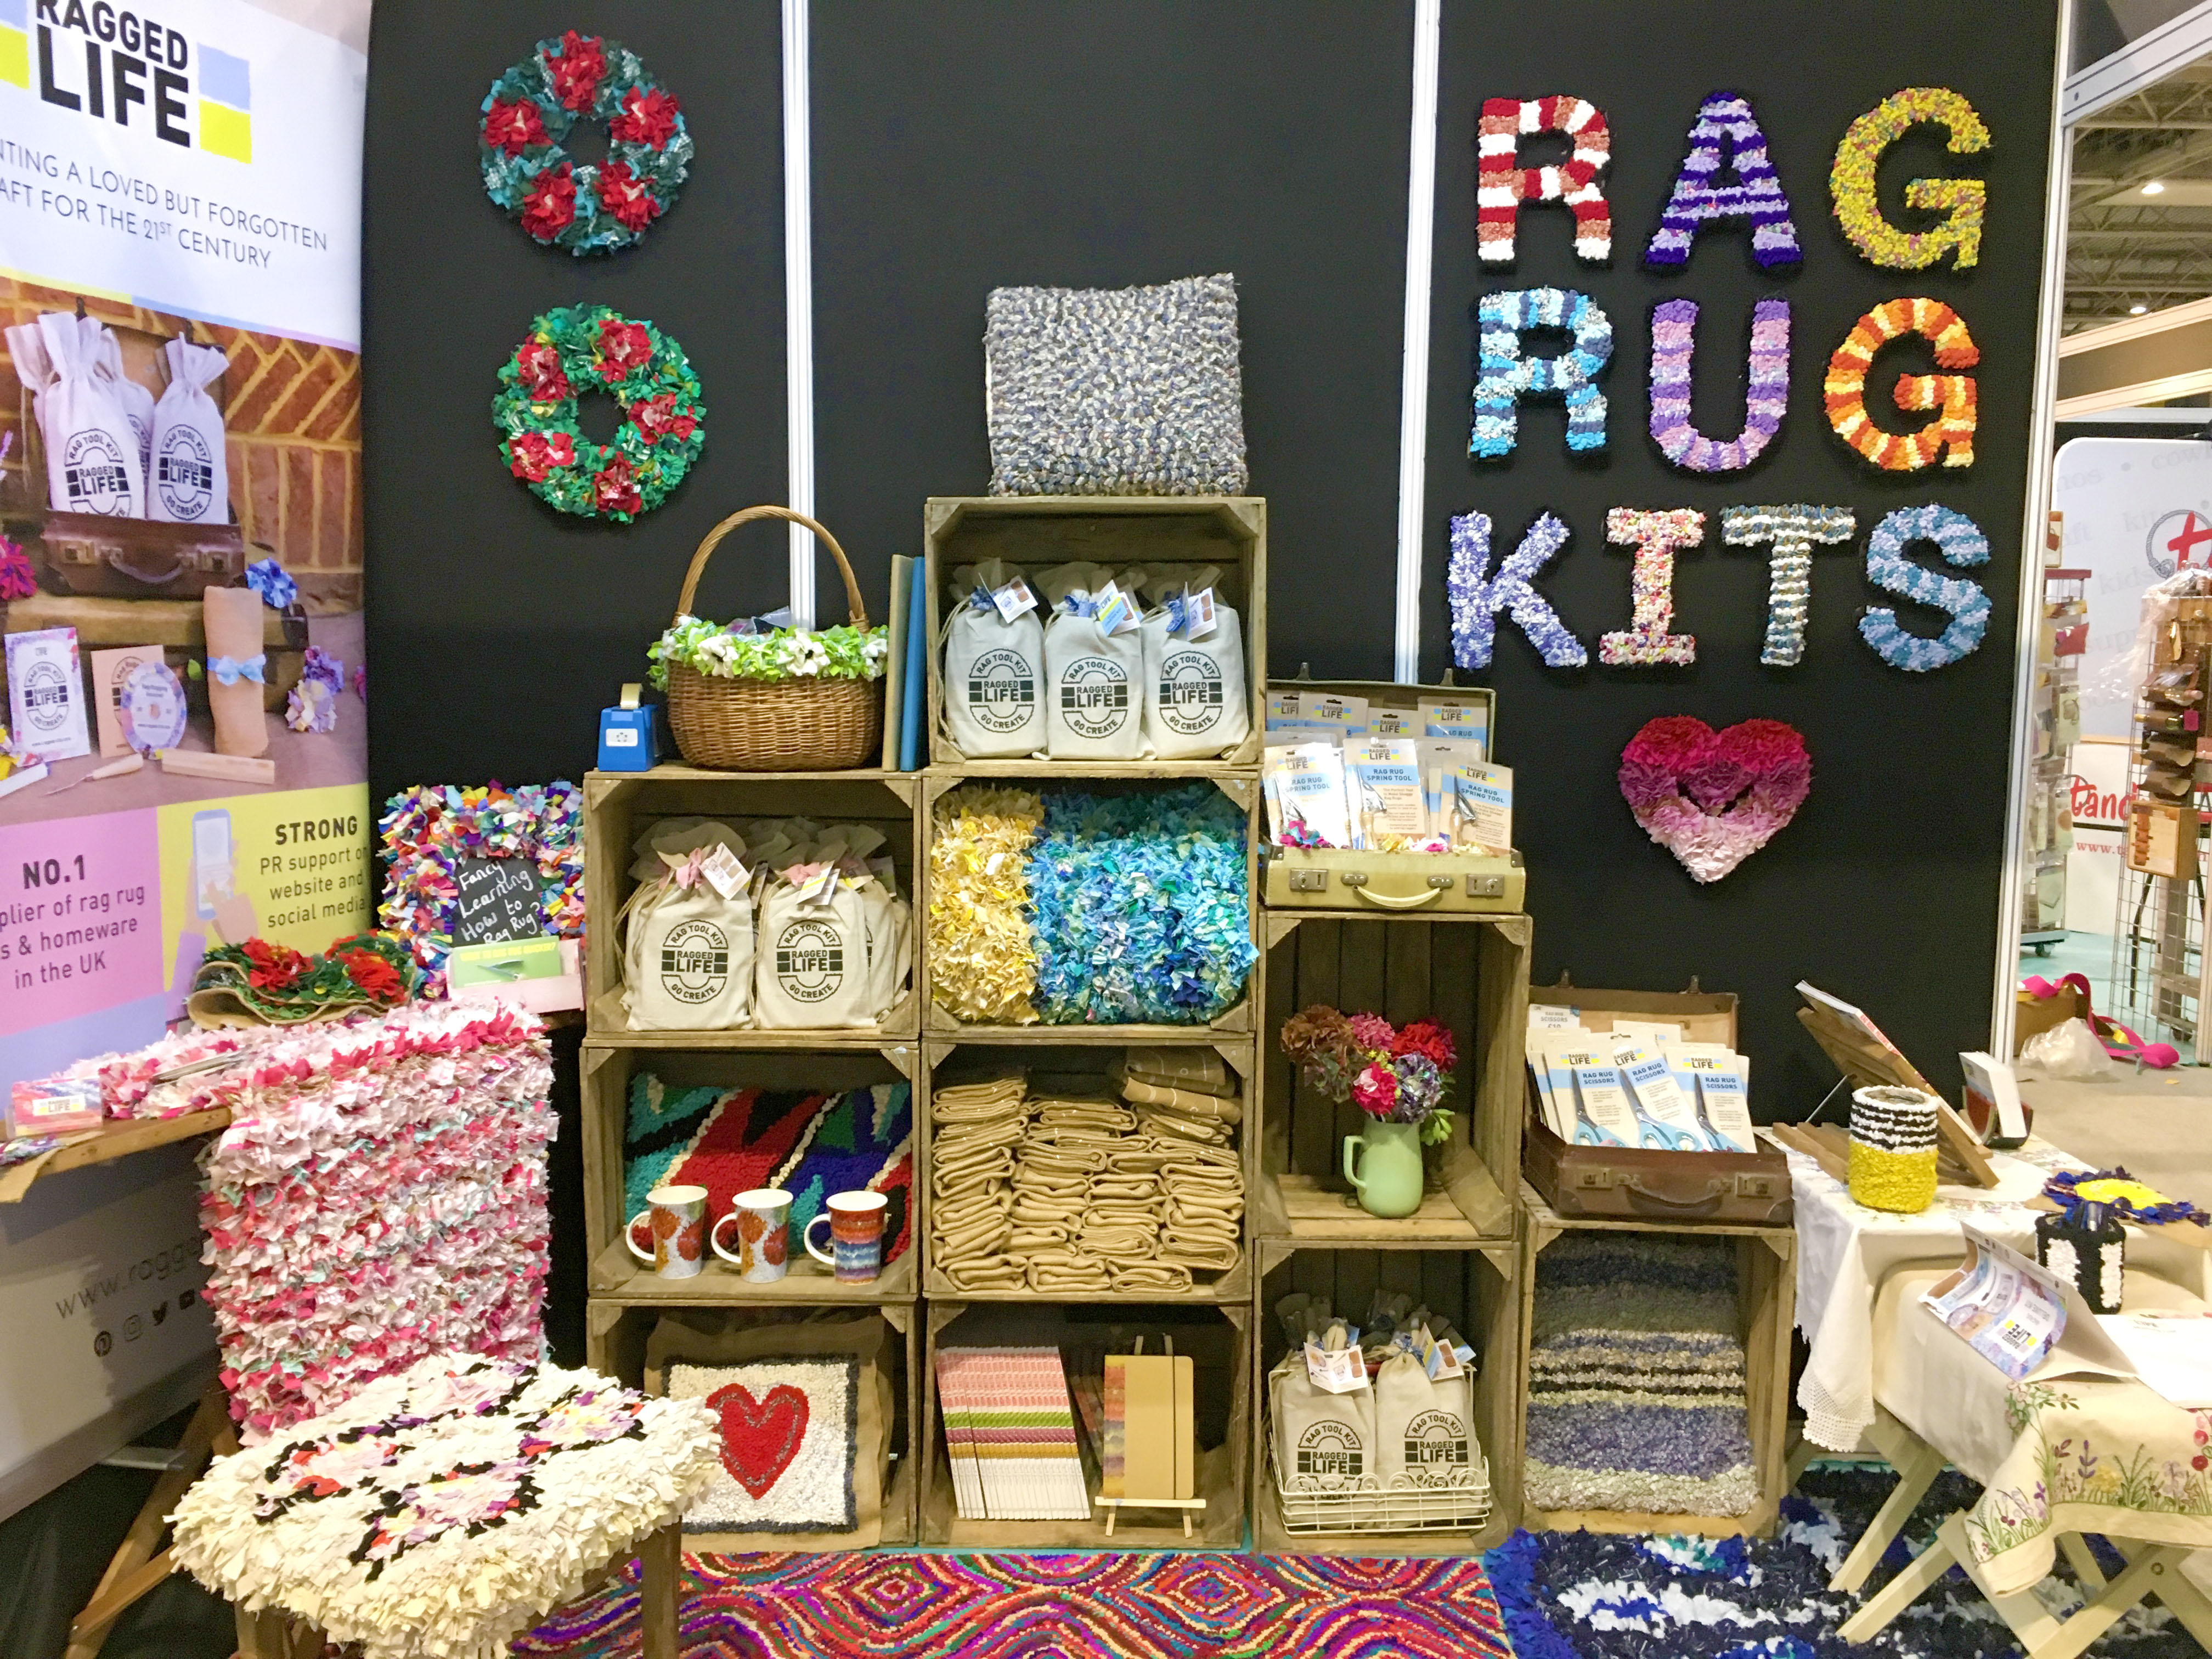 Ragged Life Rag Rug Products at CHSI Stitches Trade Fair 2018